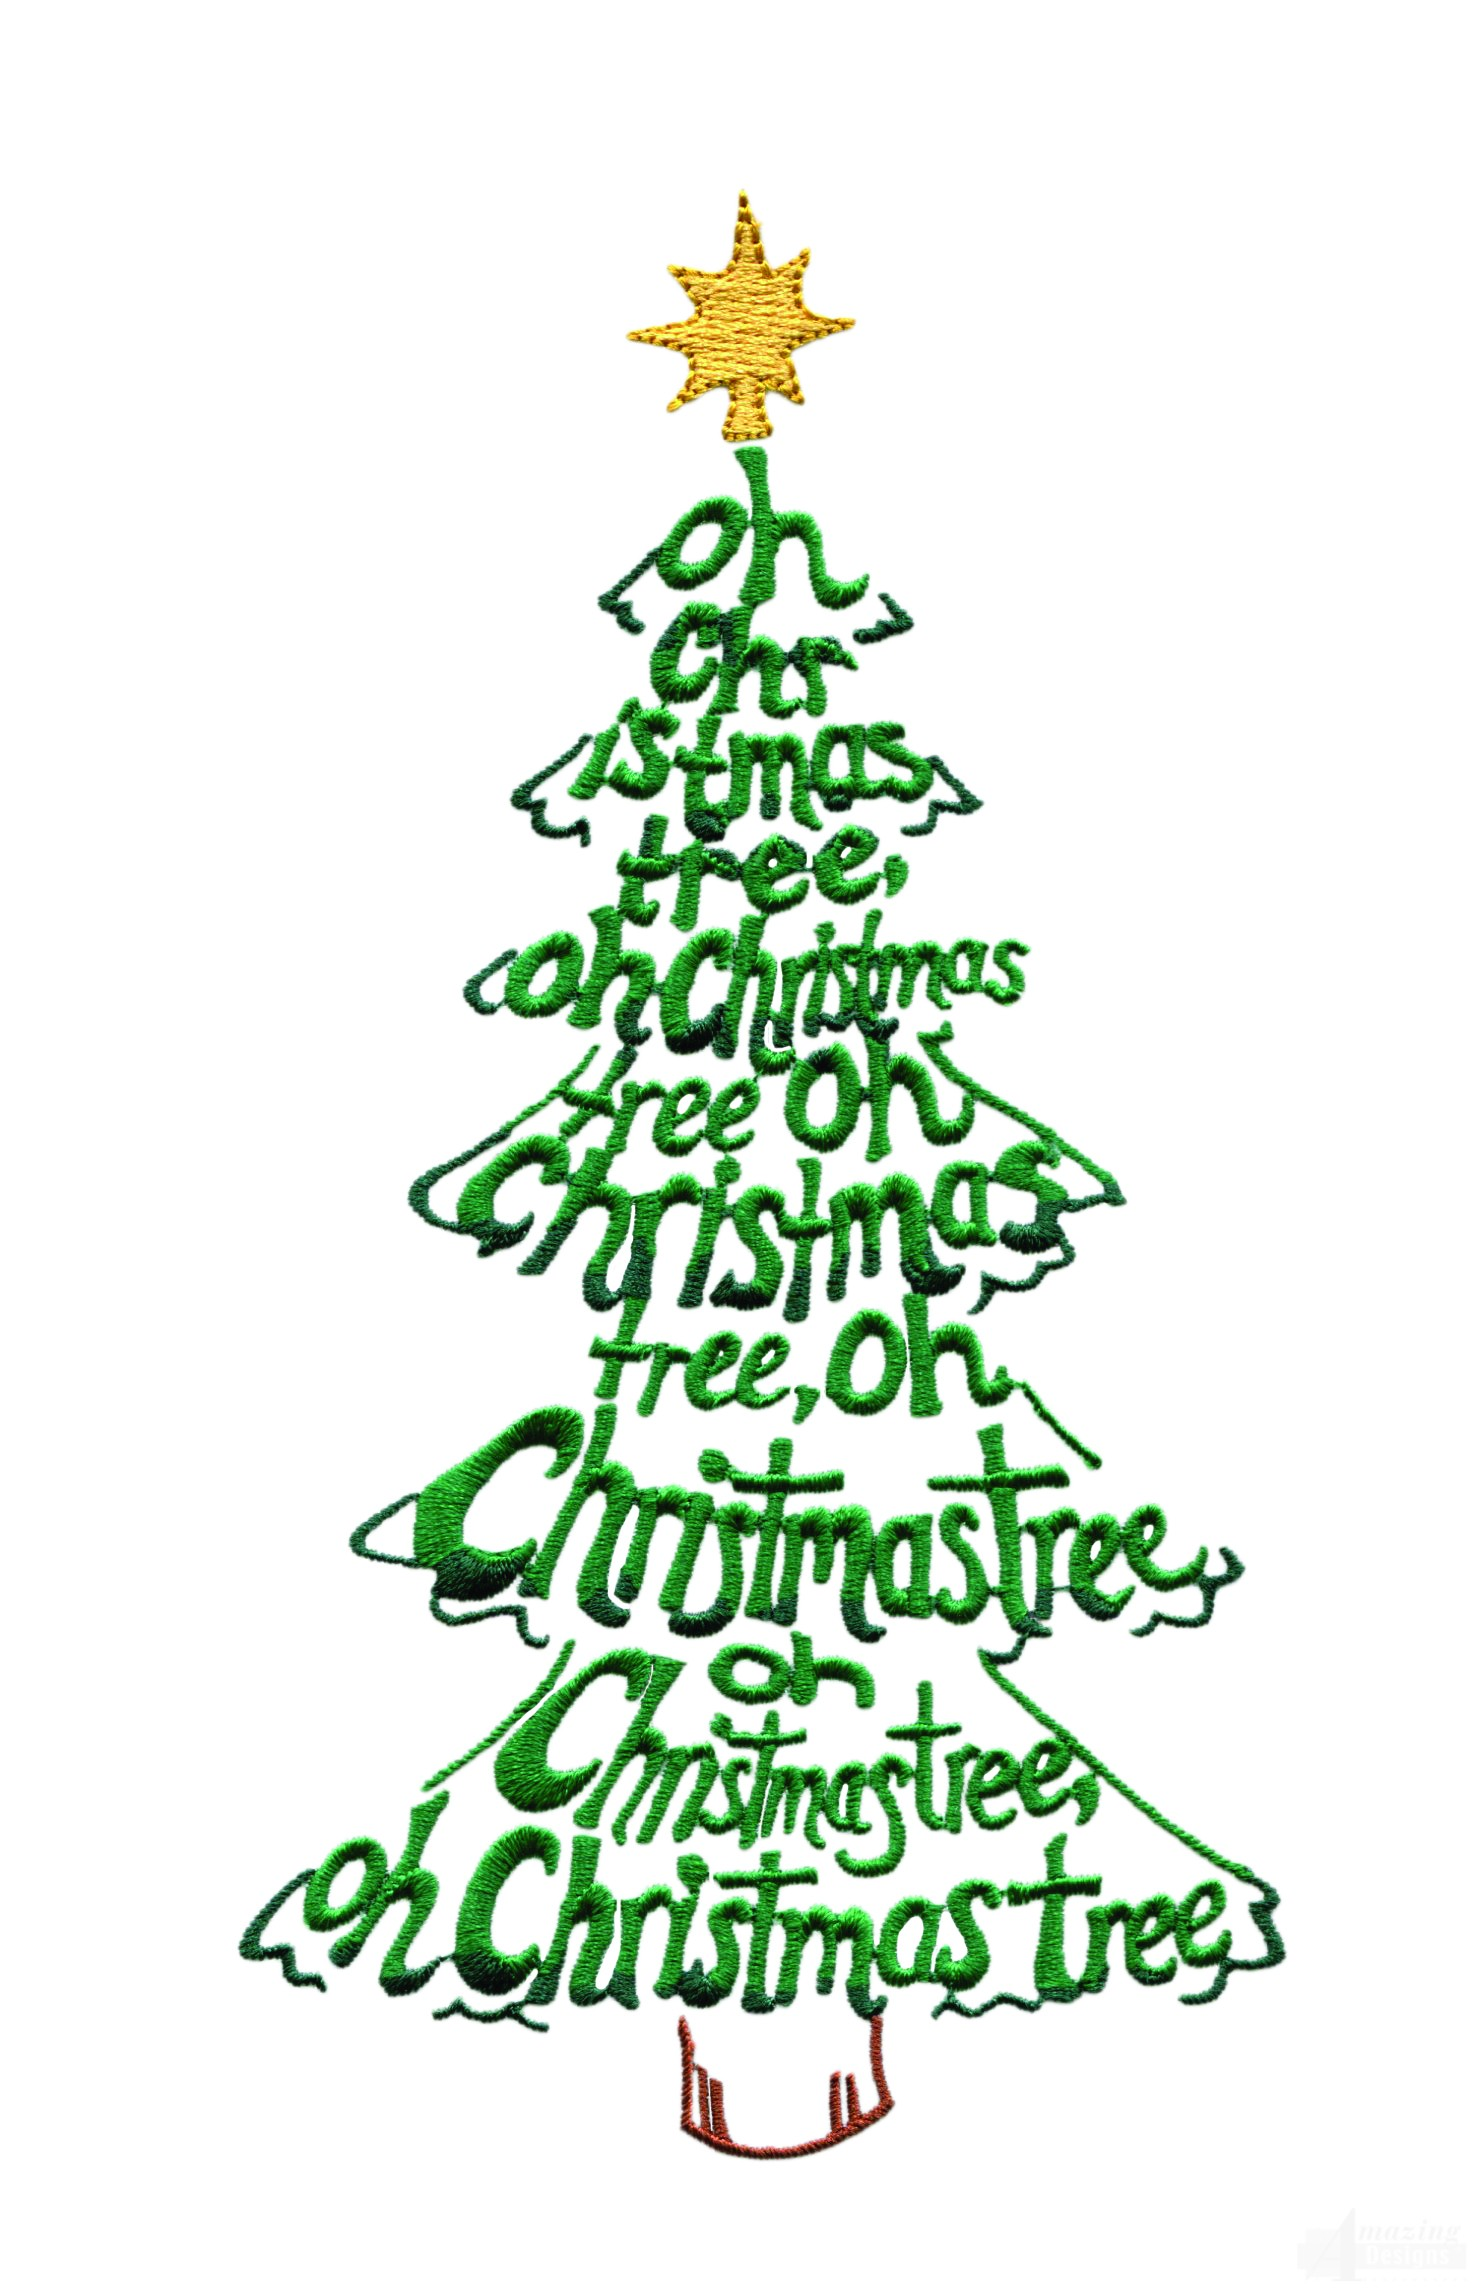 Oh Christmas Tree Tree Embroidery Design